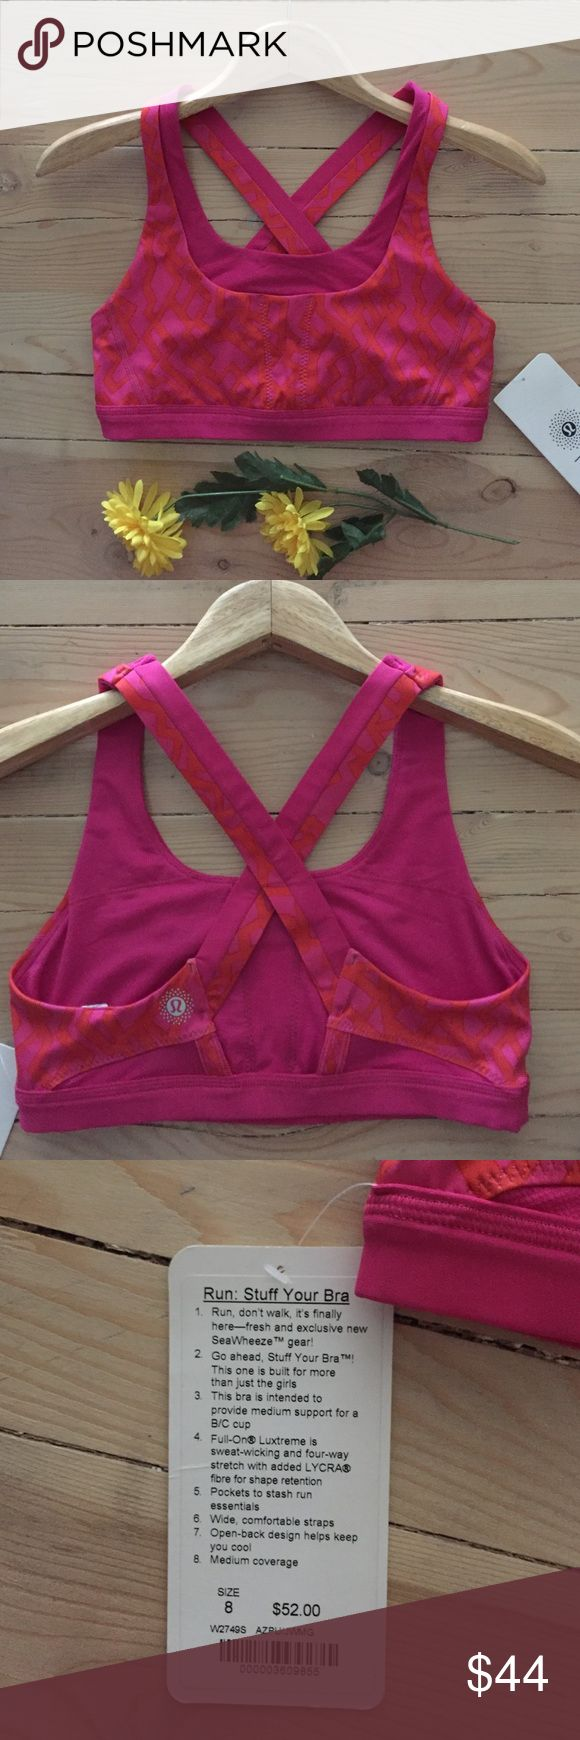 NWT Lululemon Stuff Your Bra Brand new with tags Stuff Your Bra.  This bra is intended to provide medium support for a B/C cup.  Full-On Luxtreme is sweat-wicking and four-way stretch with added Lyrca fiber for shape retention.  Pockets to stash run essentials.  Open back helps keep you cool.  In new condition. lululemon athletica Intimates & Sleepwear Bras